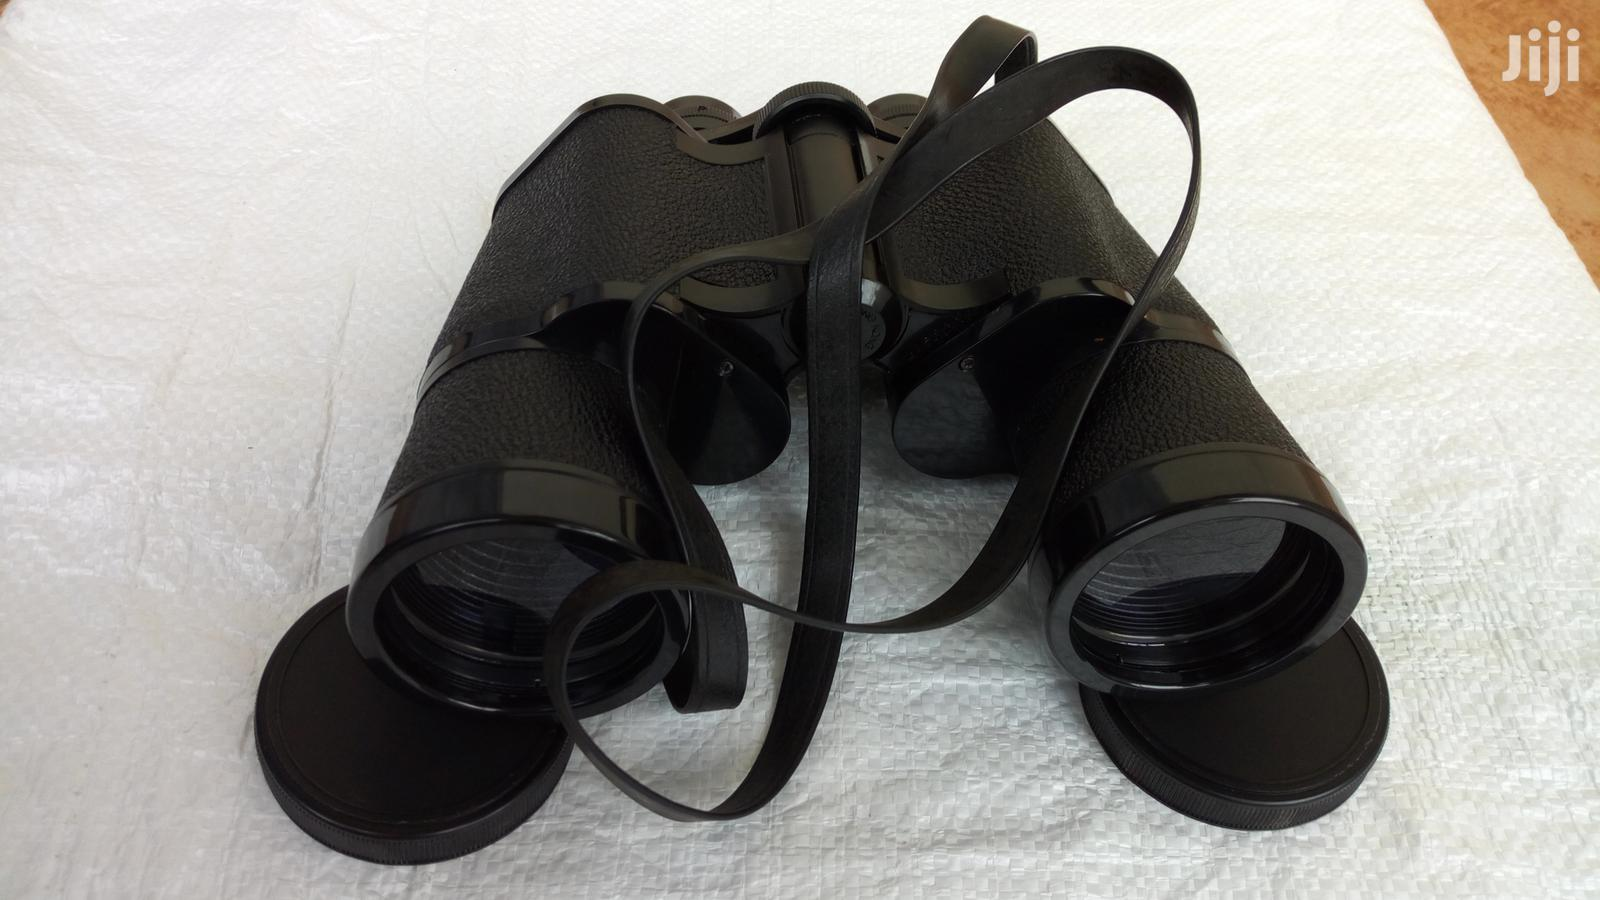 Binoculars 10x50mm Prinz Coated Optics Field 5.3 With Case